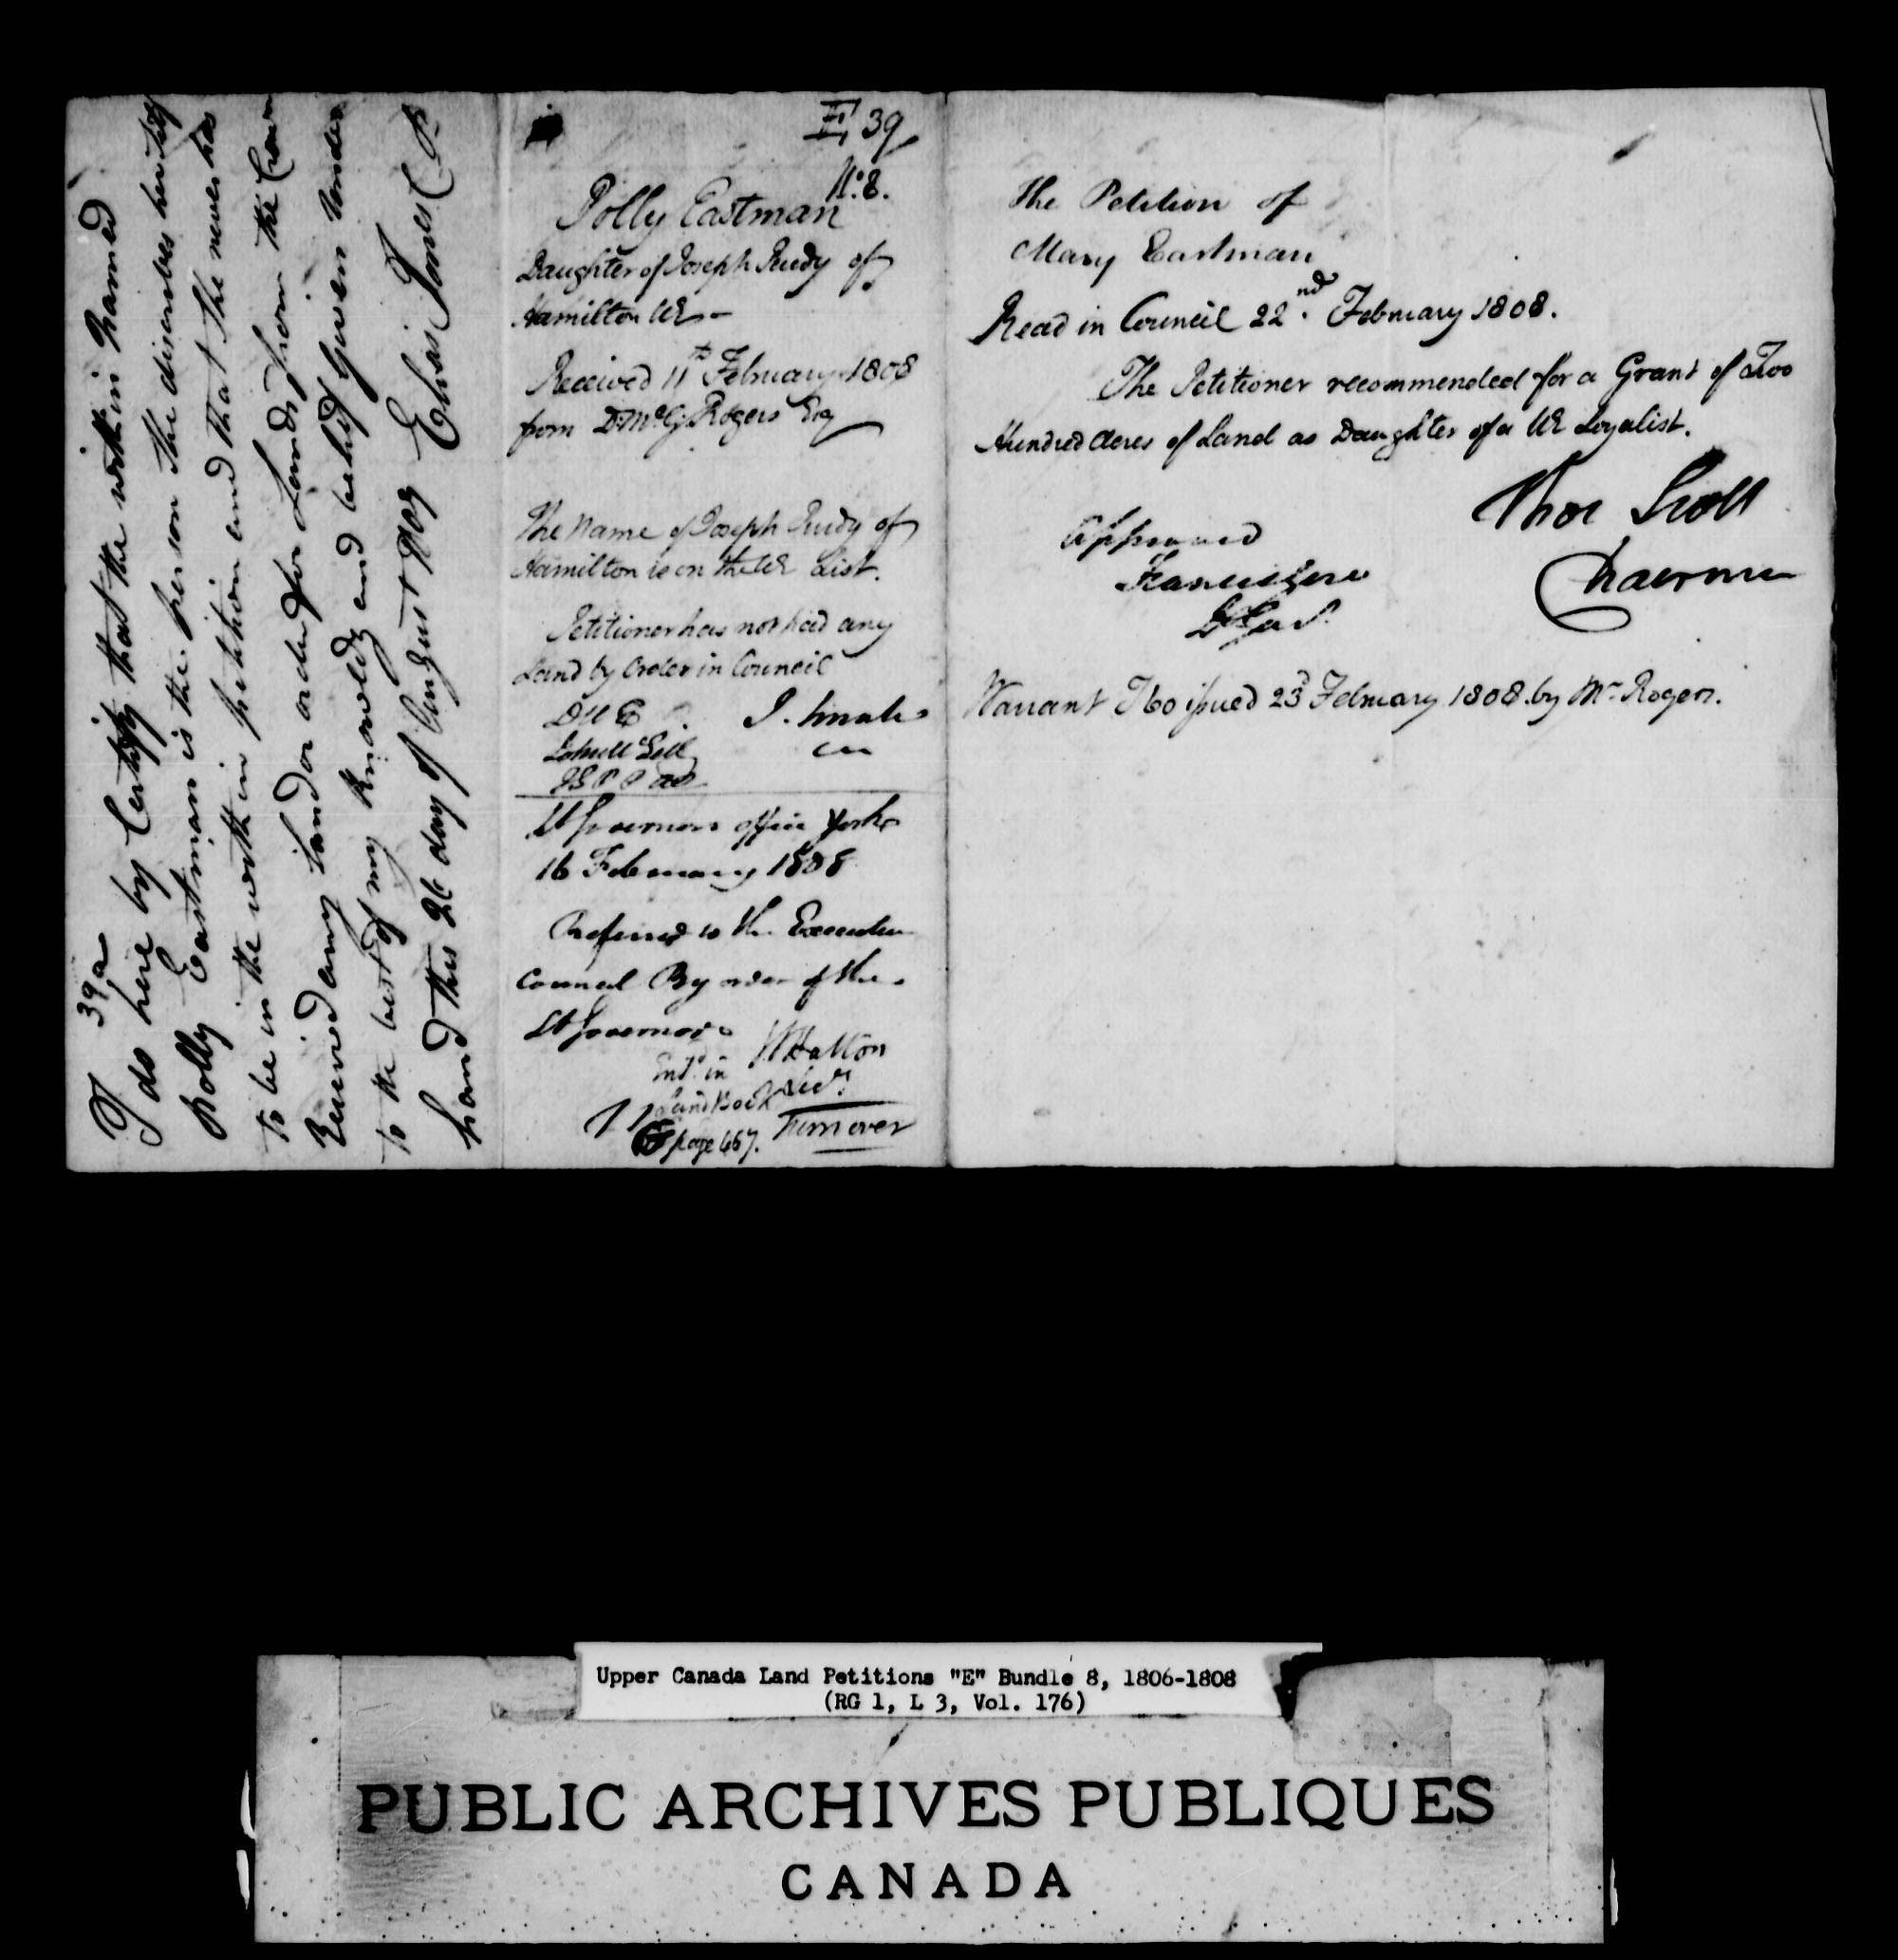 Title: Upper Canada Land Petitions (1763-1865) - Mikan Number: 205131 - Microform: c-1887